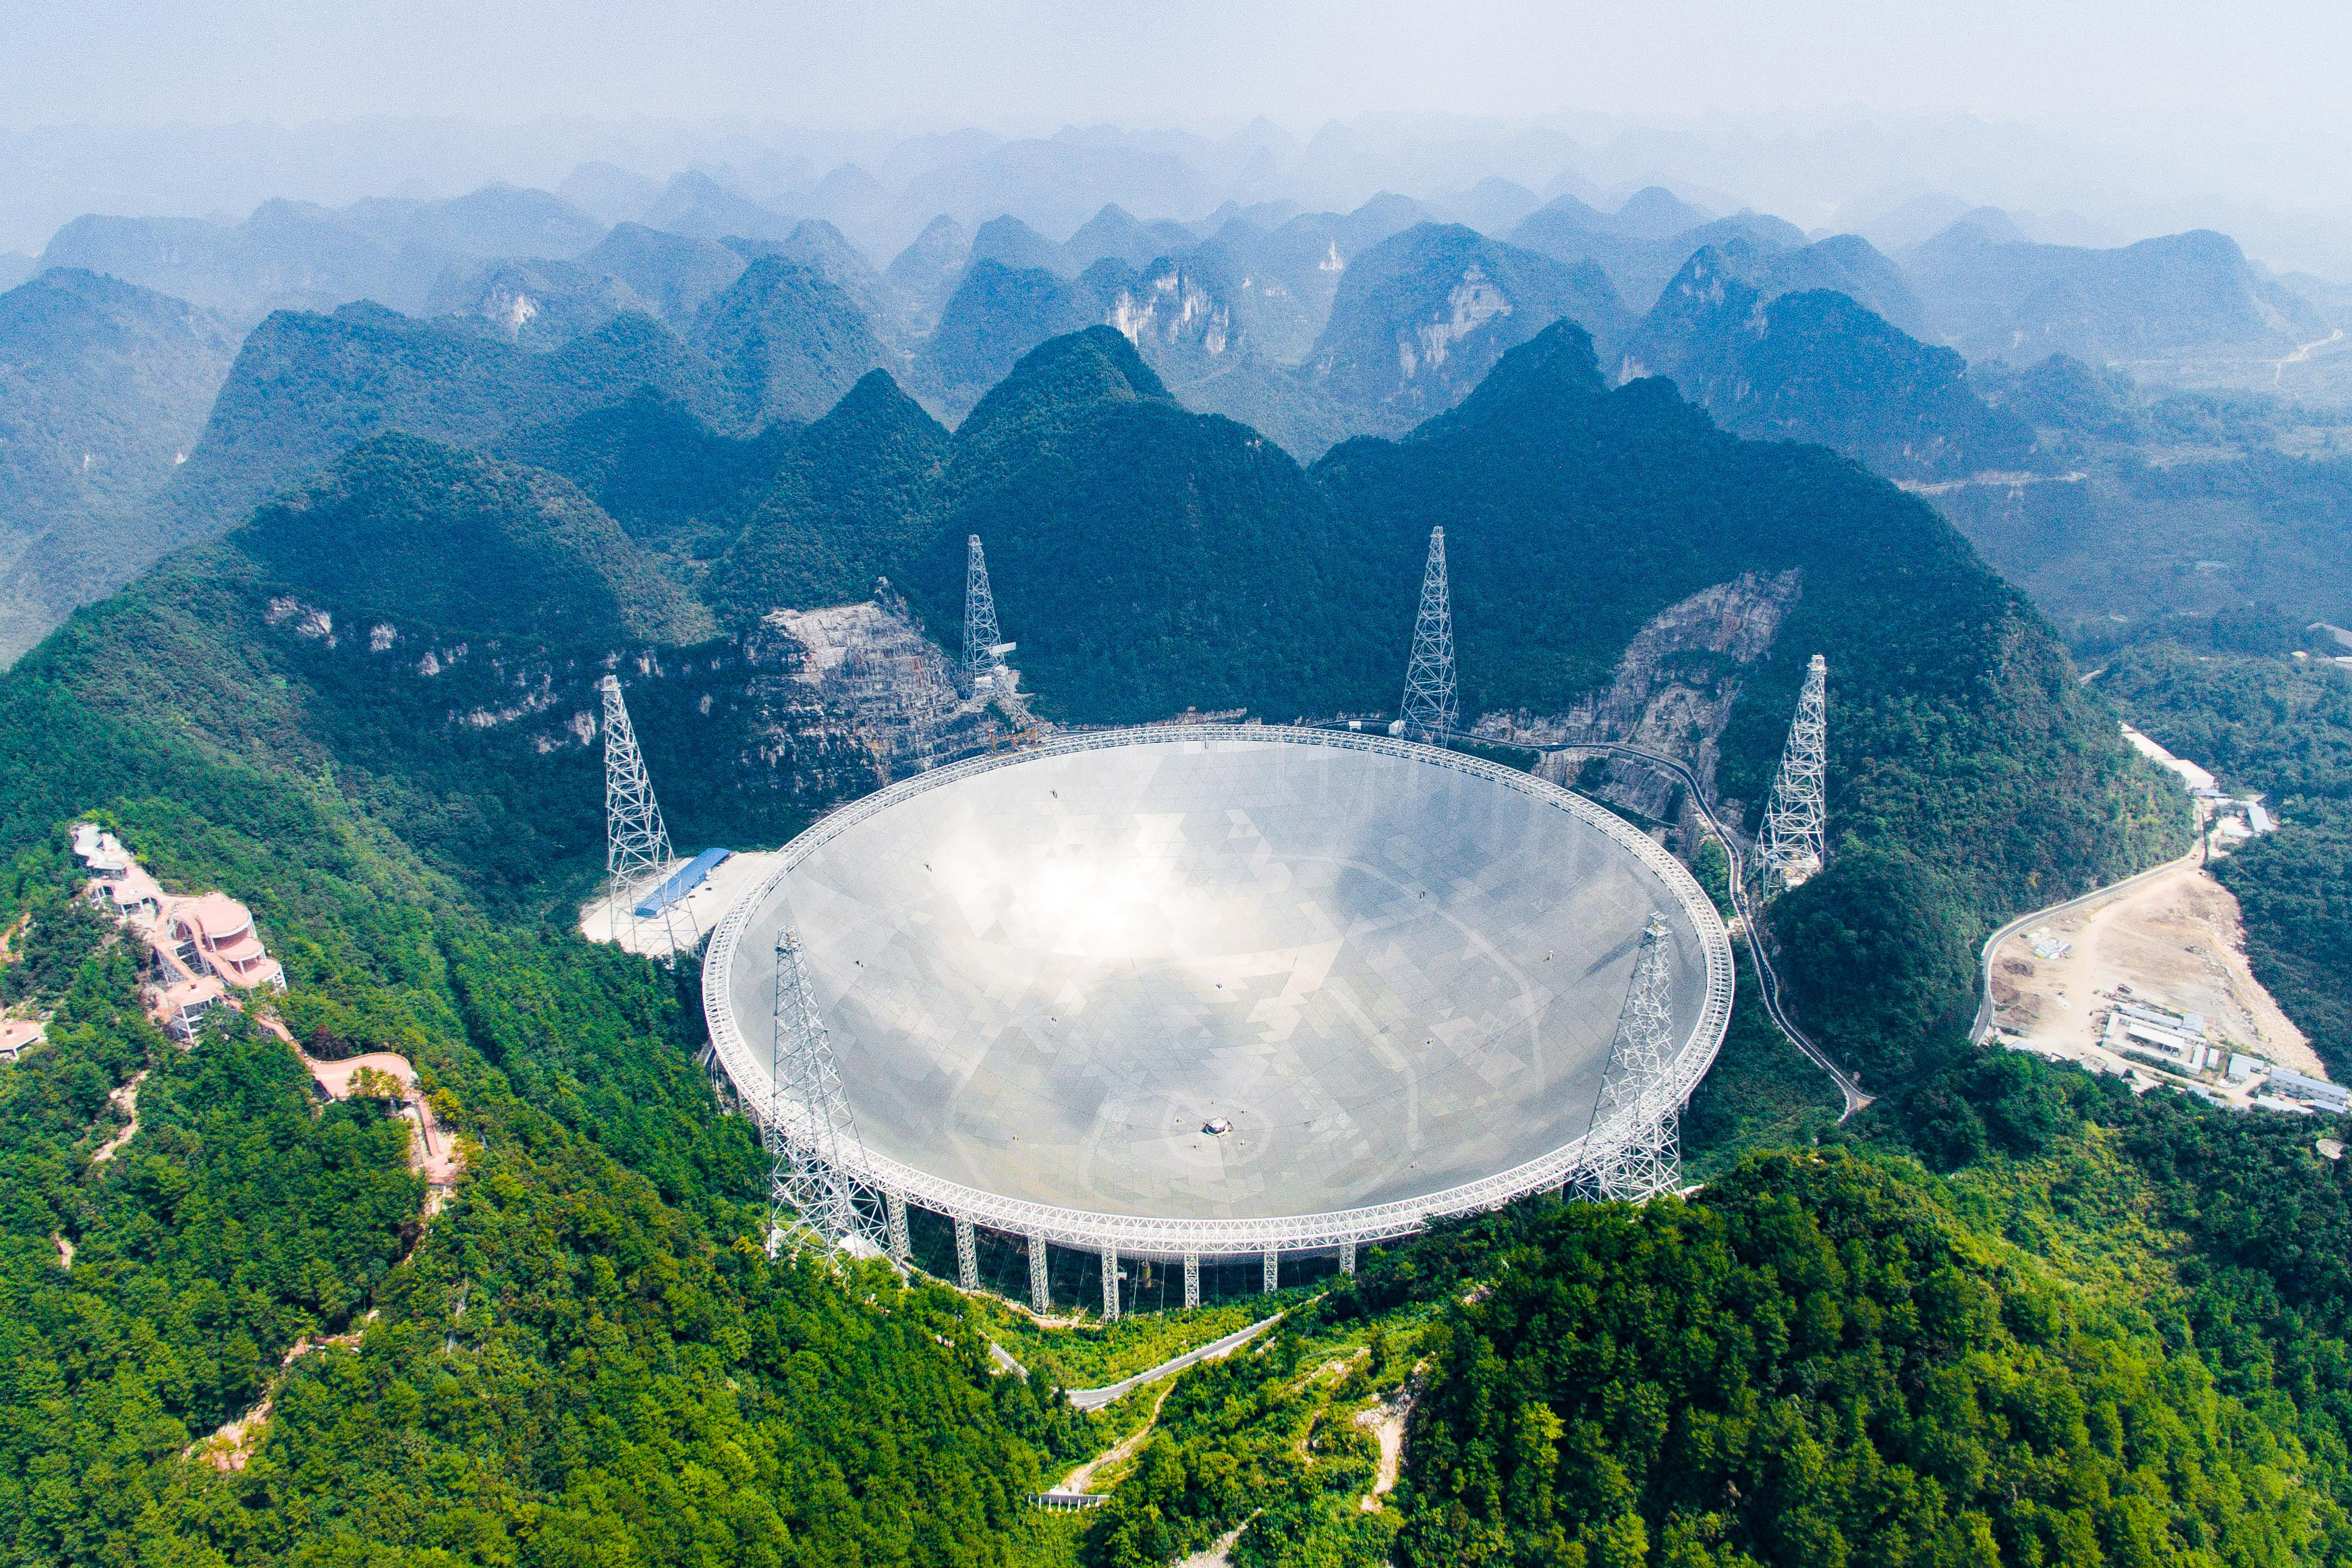 Slide 61 of 73: CAPTION: BEIJING, Dec. 13, 2016 -- Photo taken on Sept. 24, 2016 shows the 500-meter Aperture Spherical Telescope in Pingtang County, southwest China's Guizhou Province. The FAST, world's largest radio telescope, measuring 500 meters in diameter, was completed and put into use. Drones have been in common use in photojournalism in 2016. (Xinhua/Liu Xu via Getty Images)